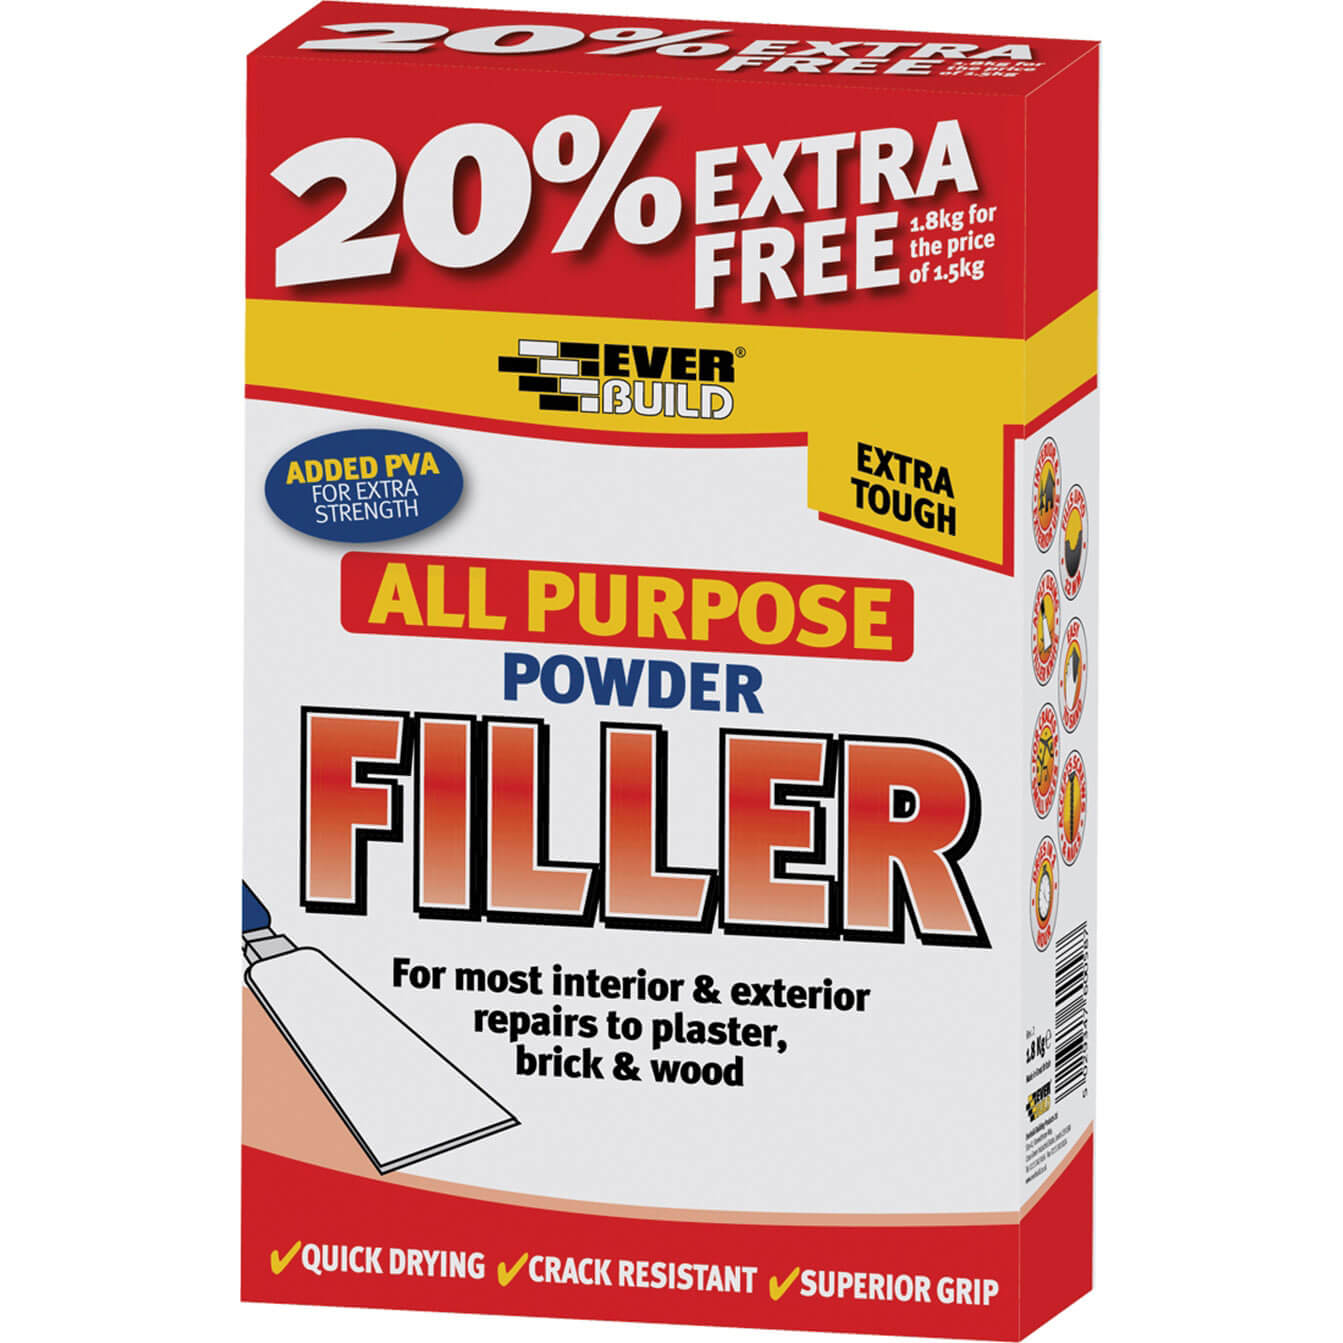 Tooled Up/Sealants & Adhesives/Fillers/Everbuild All Purpose Powder Filler 450g + 30% Free